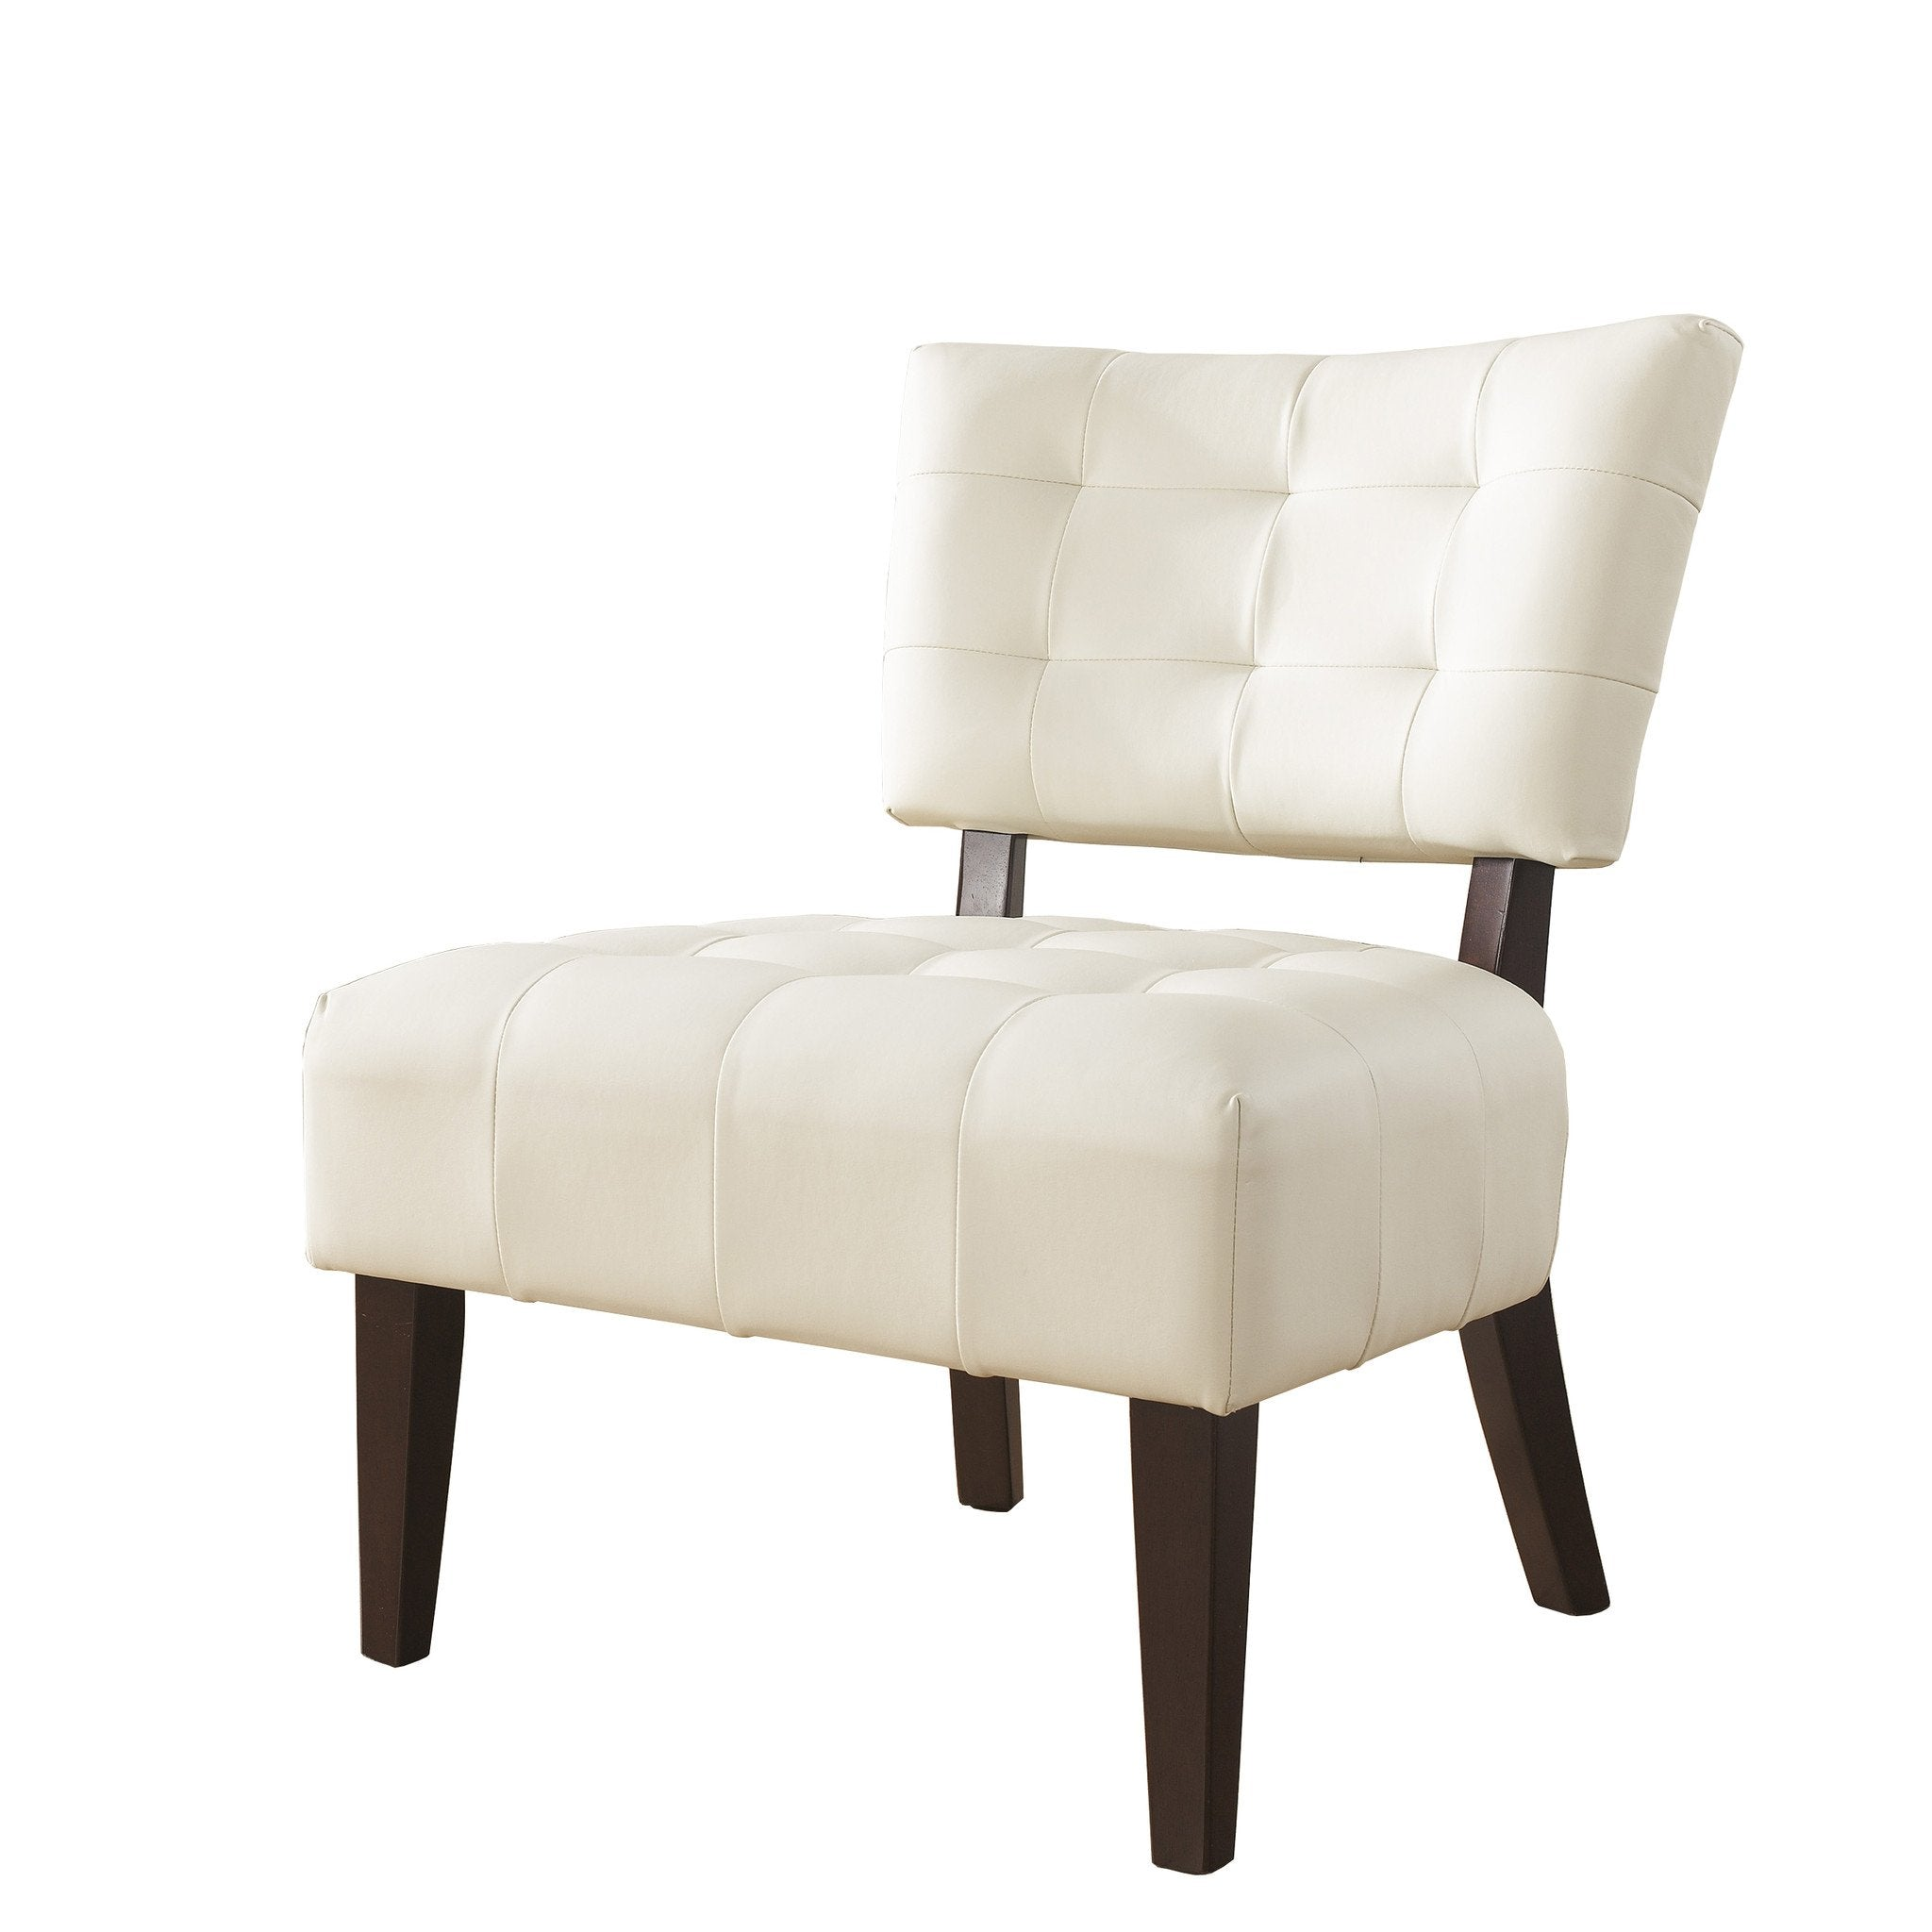 Ivory Blended Leather Tufted Back Dining Chair with Oversized Seating